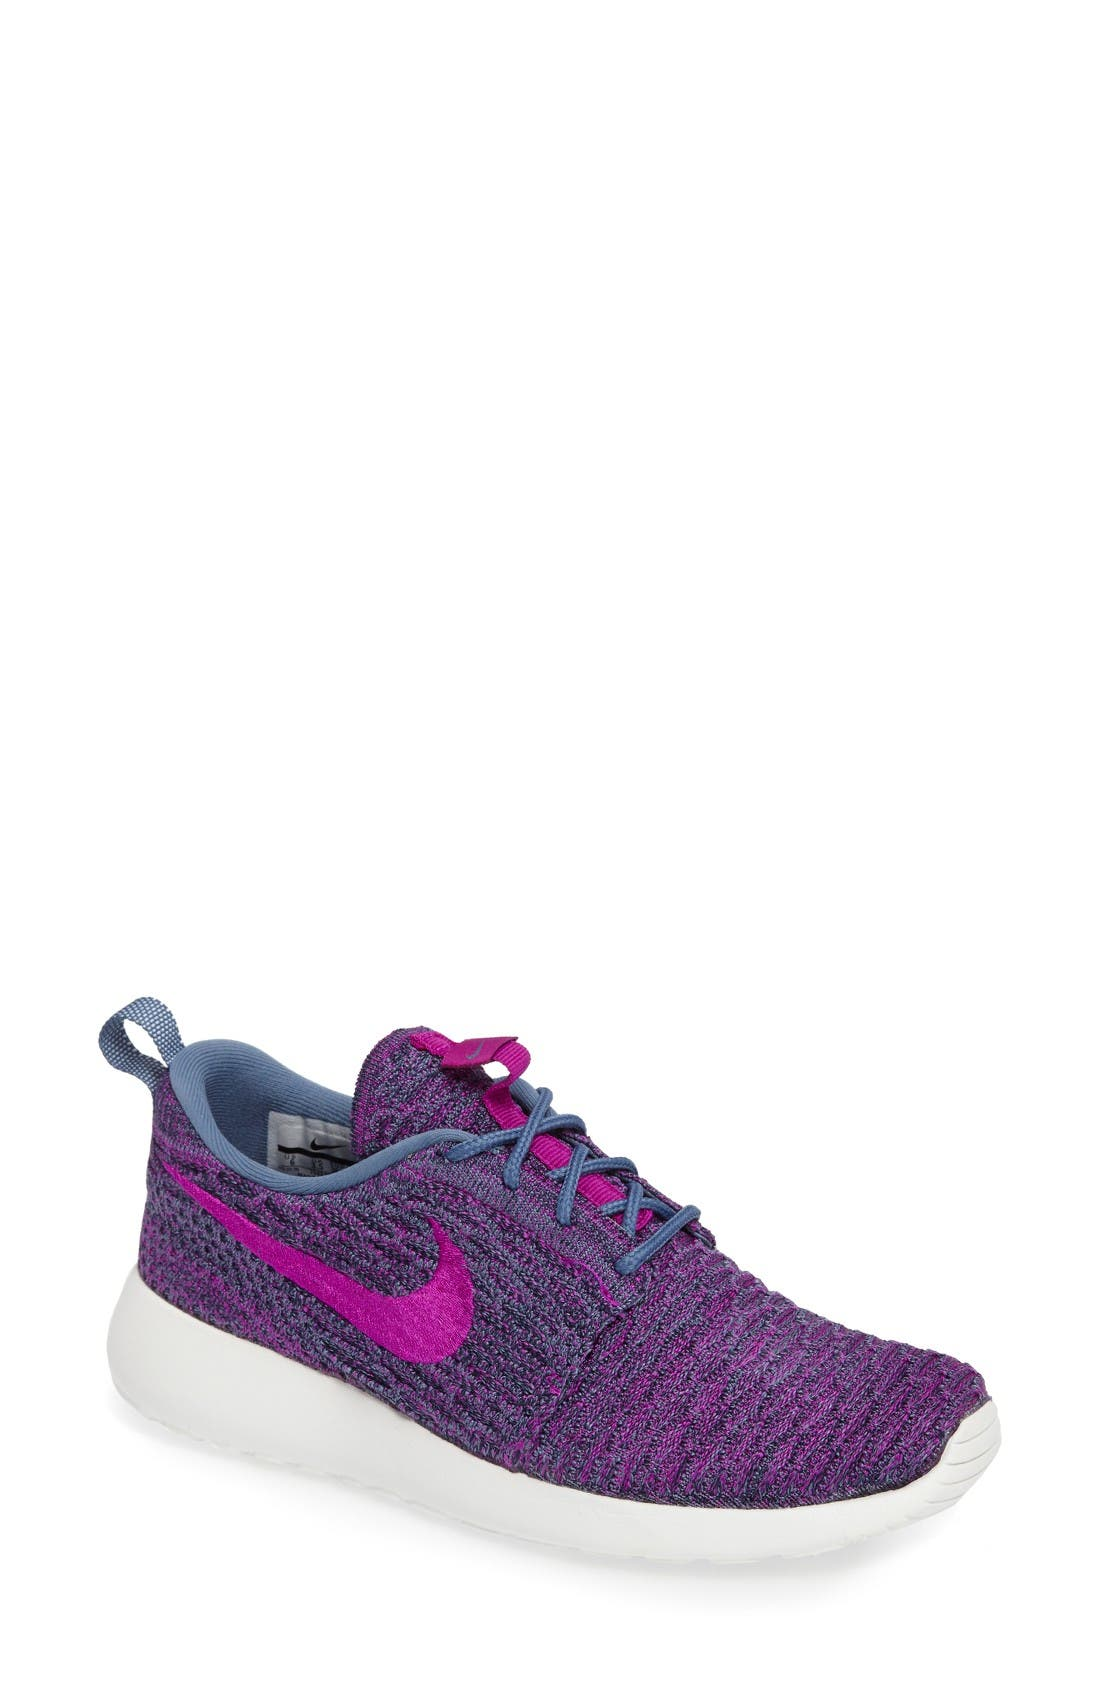 nike roshe flyknit womens nordstrom shoes